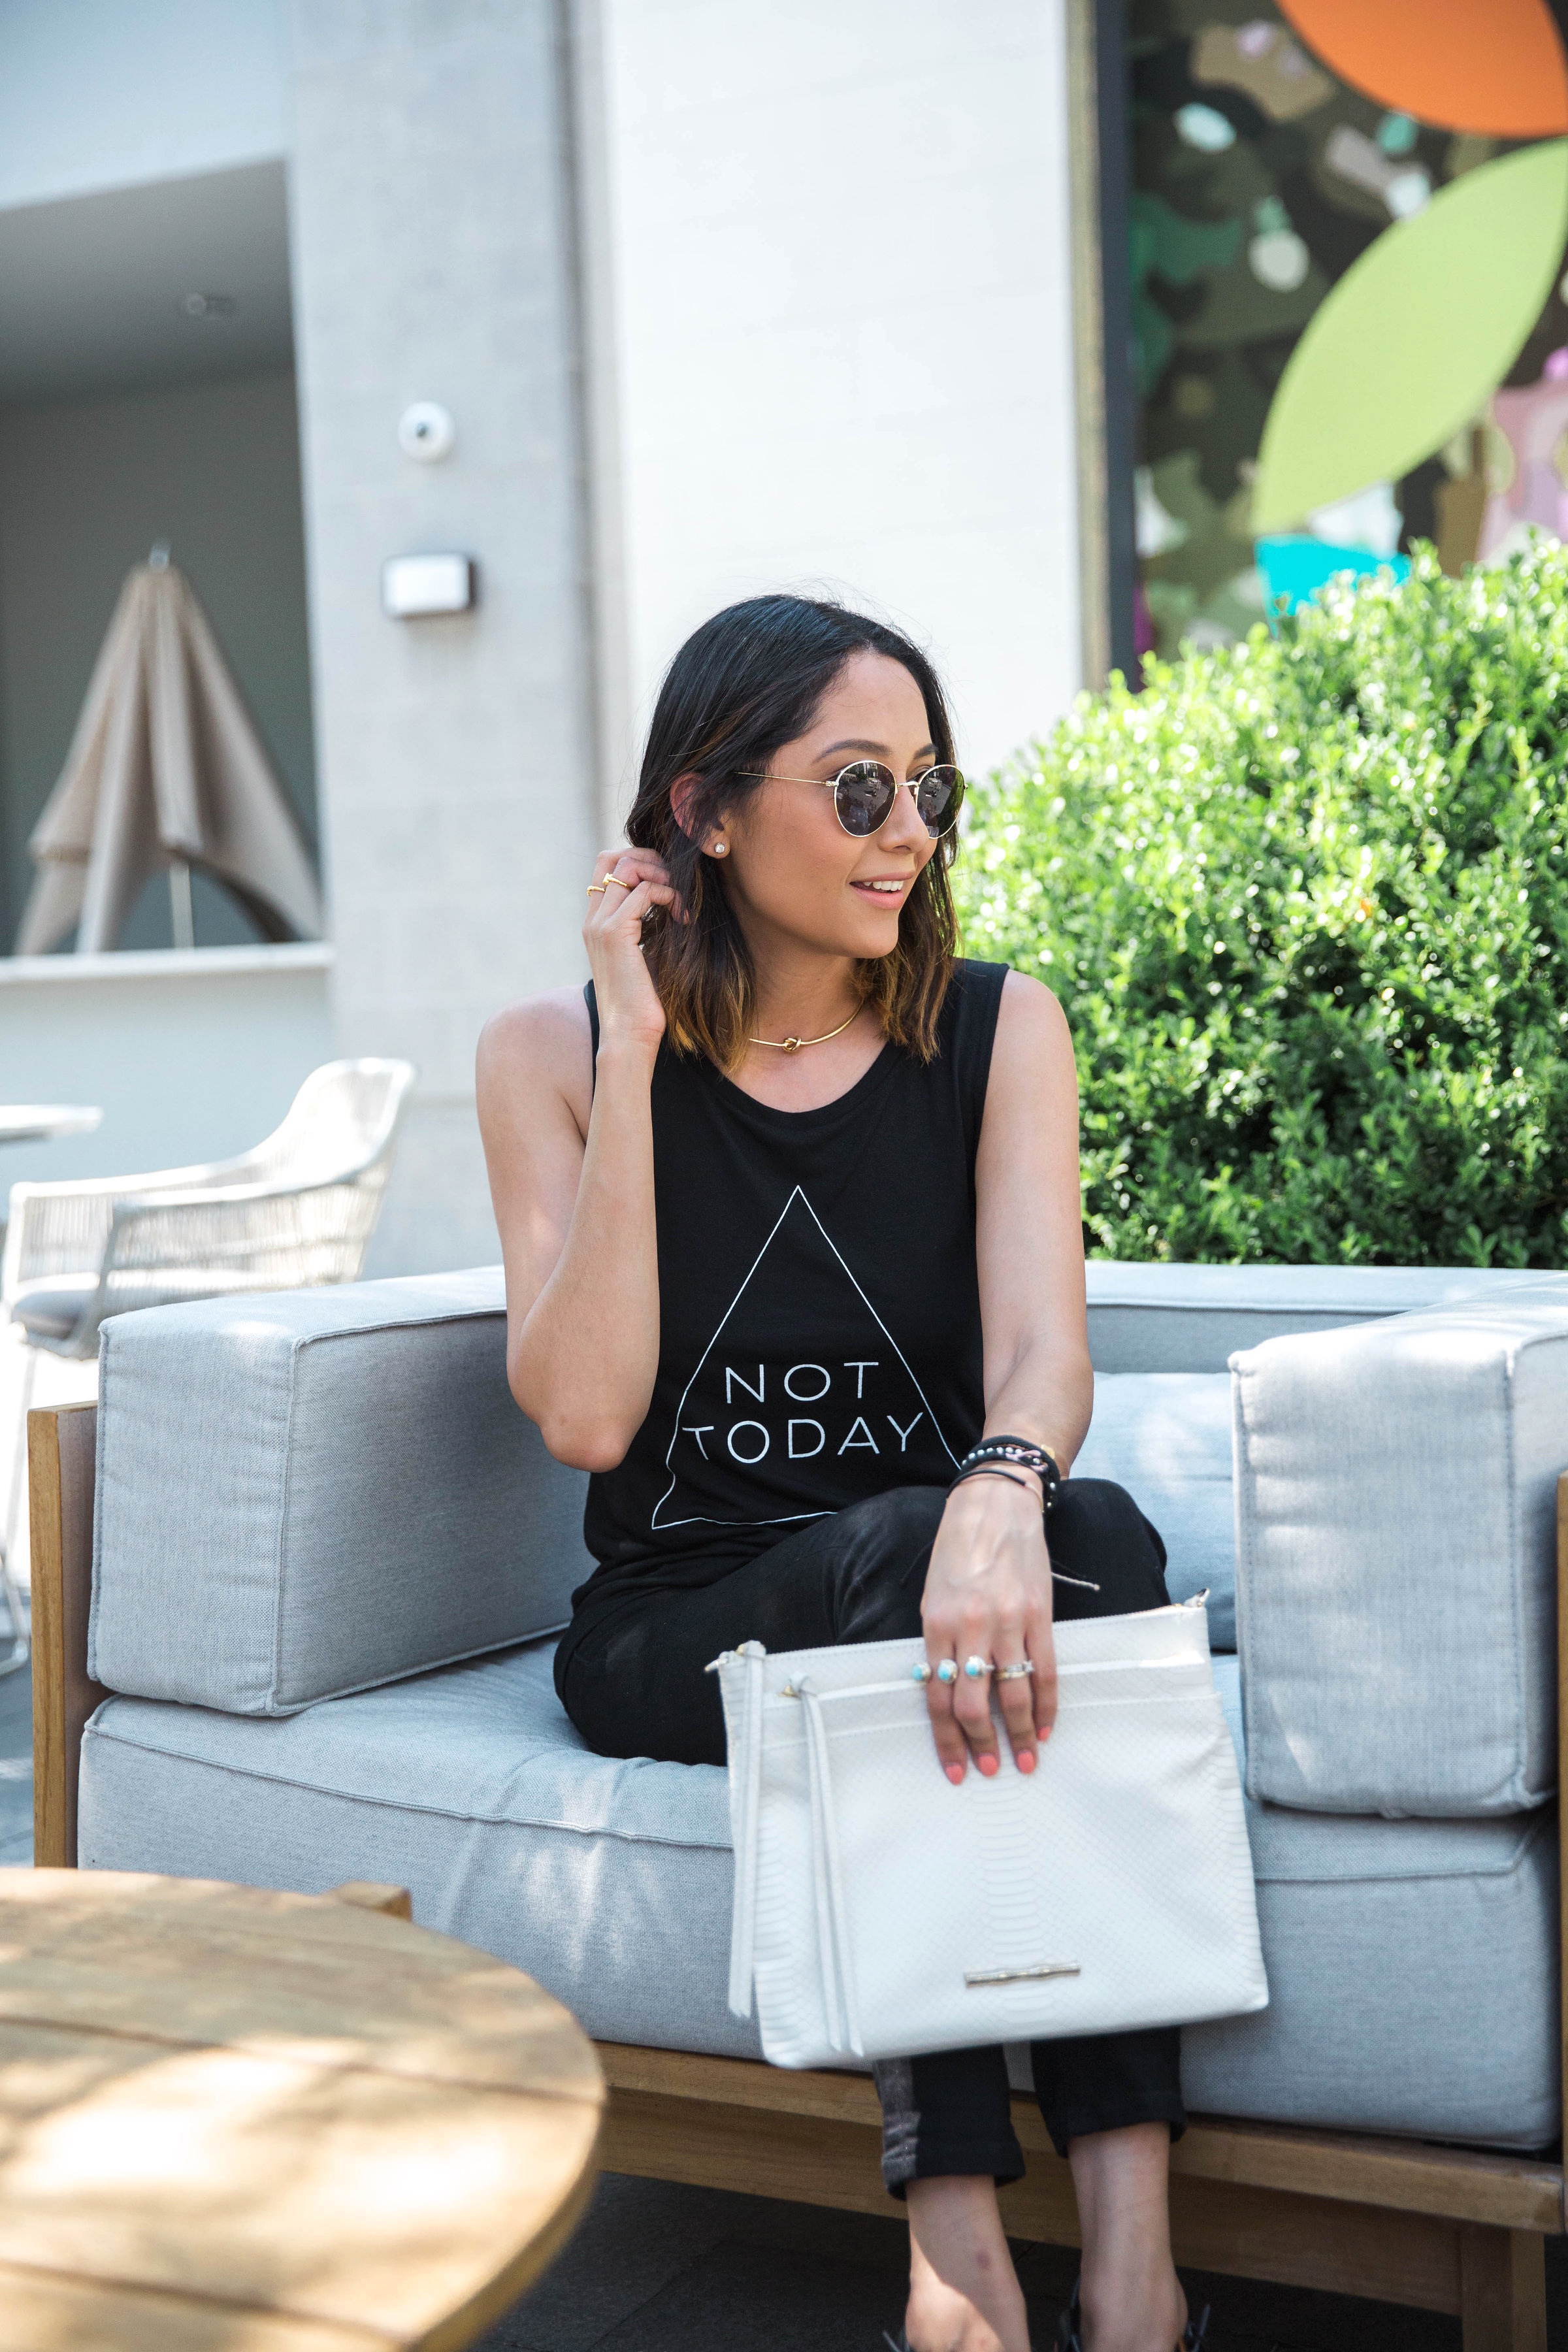 Not Today Printed Tee | All Black Look | Casual Chic | Minimal Style | White Clutch | Round Sunglasses